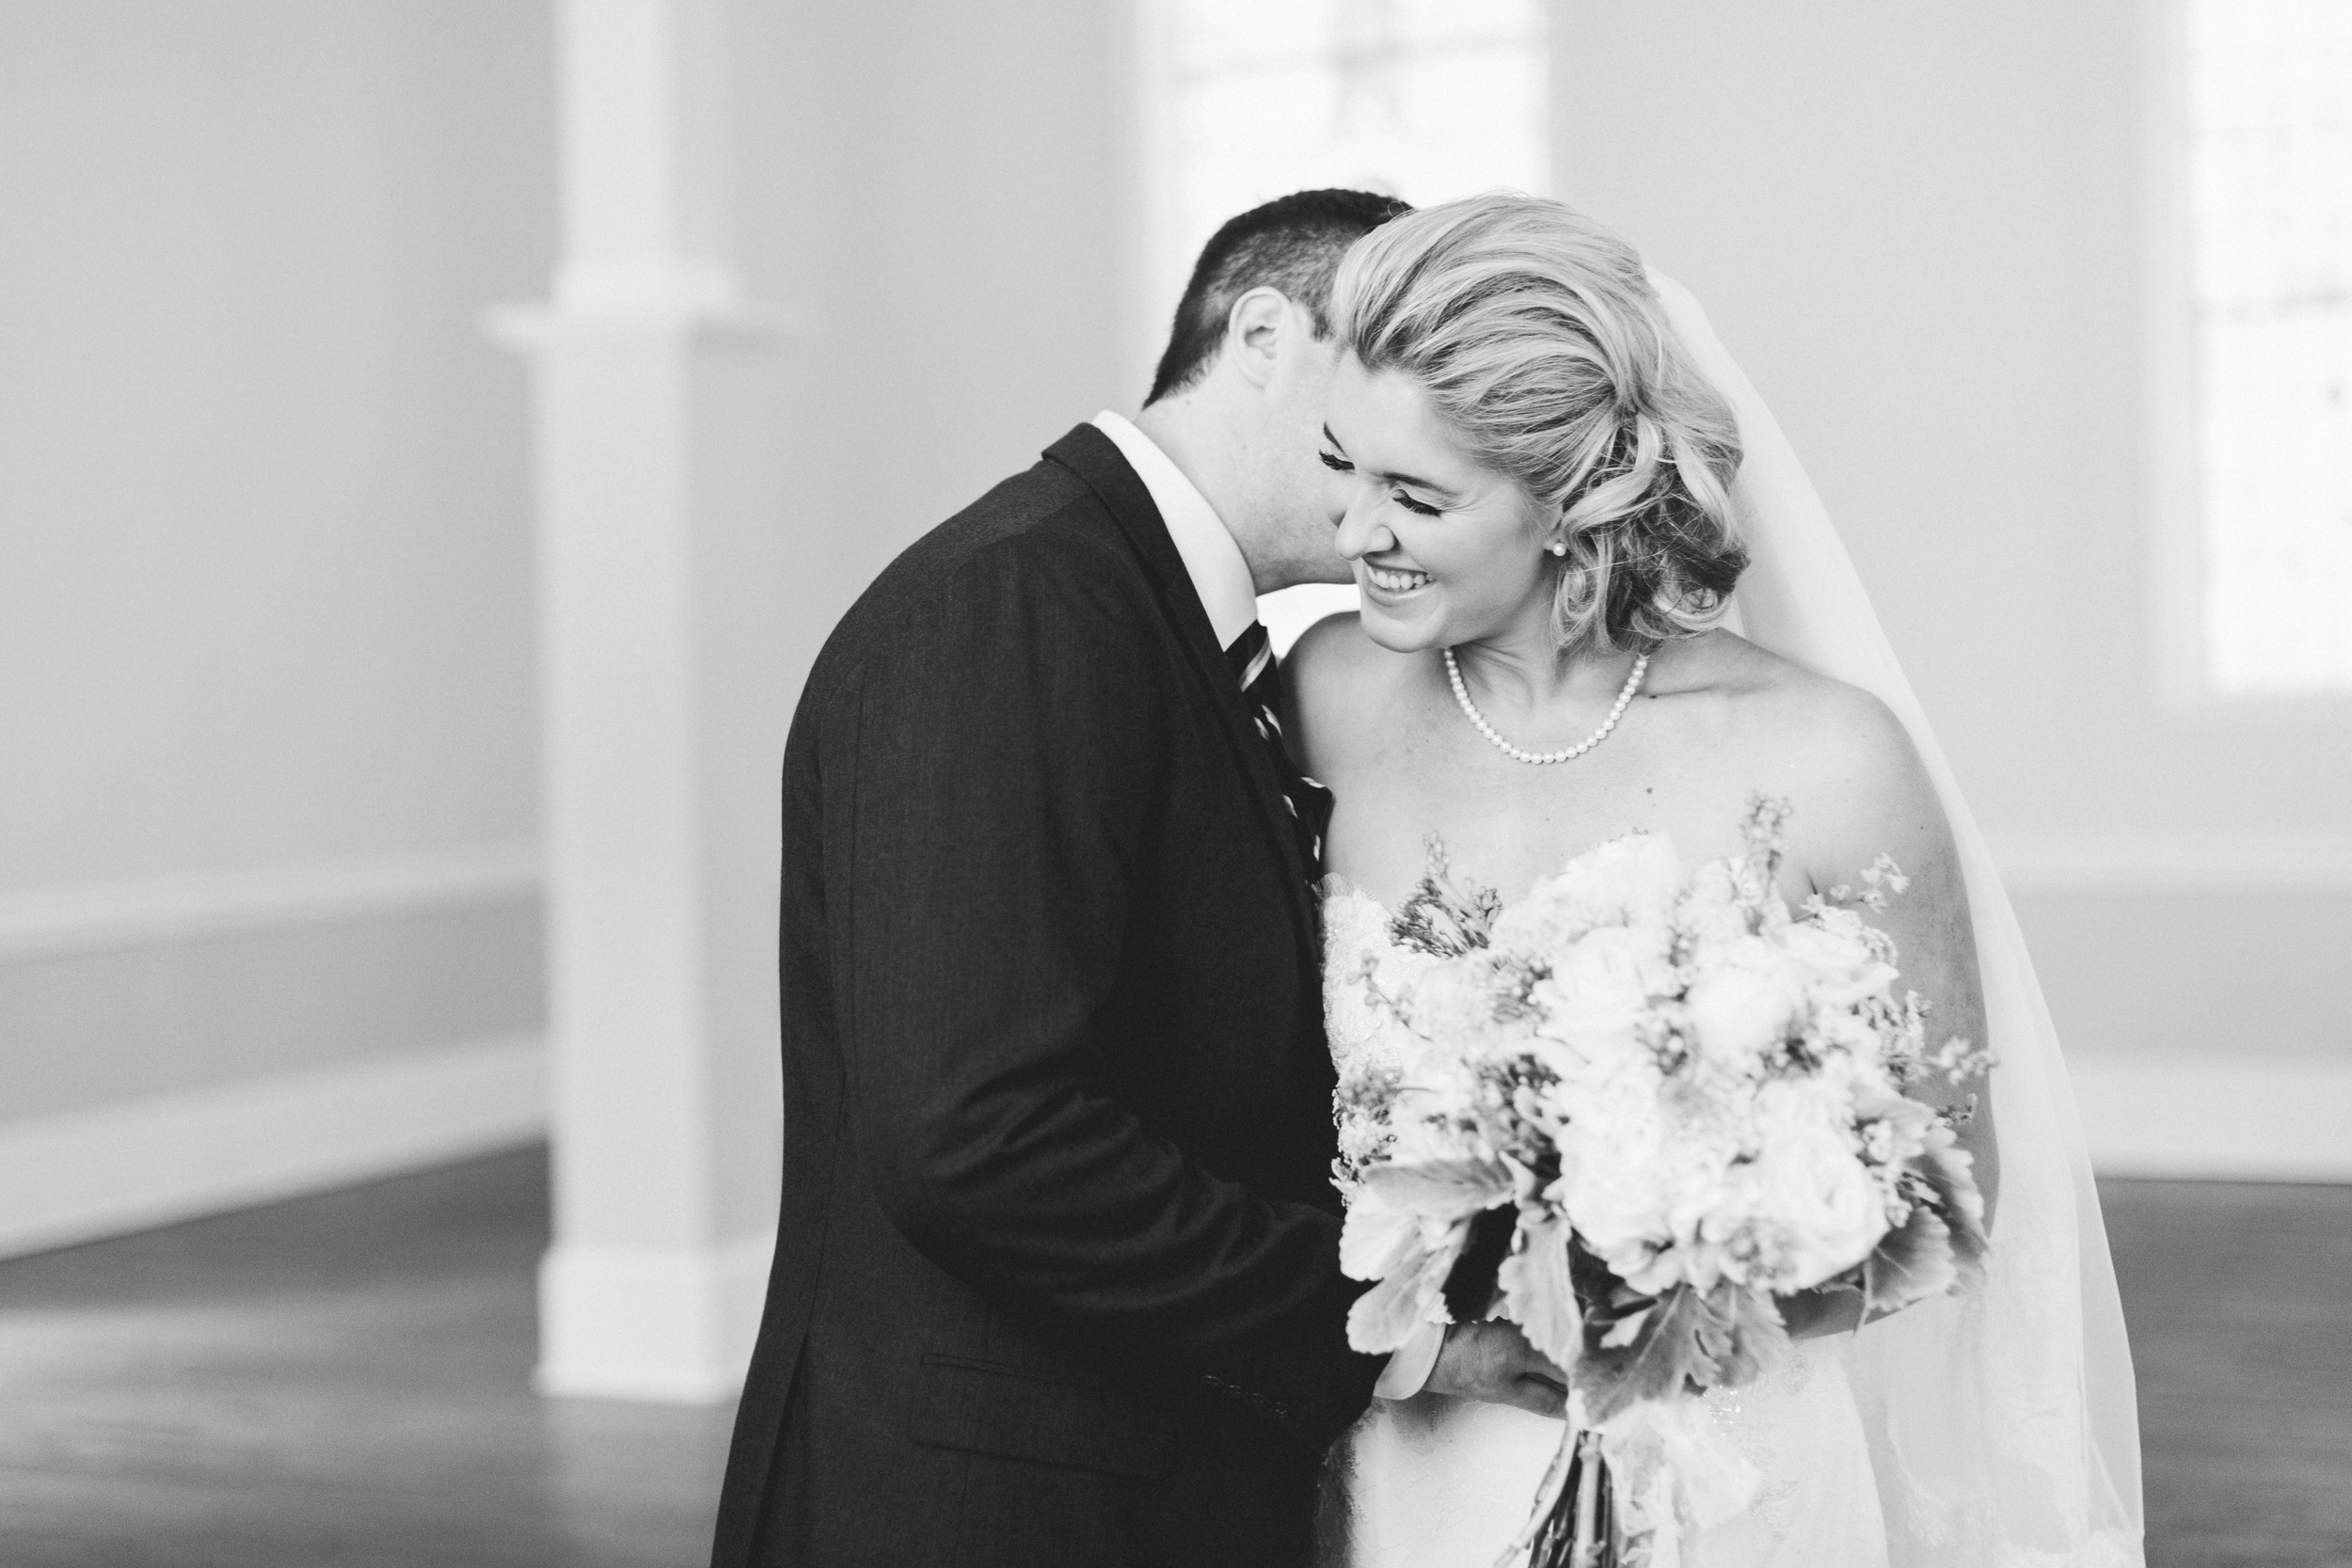 Hillary-and-Brian-izzy-hudgins-photography-anais-anette-tristan-lace-mermaid-wedding-dress-ivory-and-beau-bridal-boutique-savannah-bridal-boutique-savannah-wedding-dresses-savannah-bridal-gowns-savannah-wedding-dresses-first-babtist-savannah-13.jpg